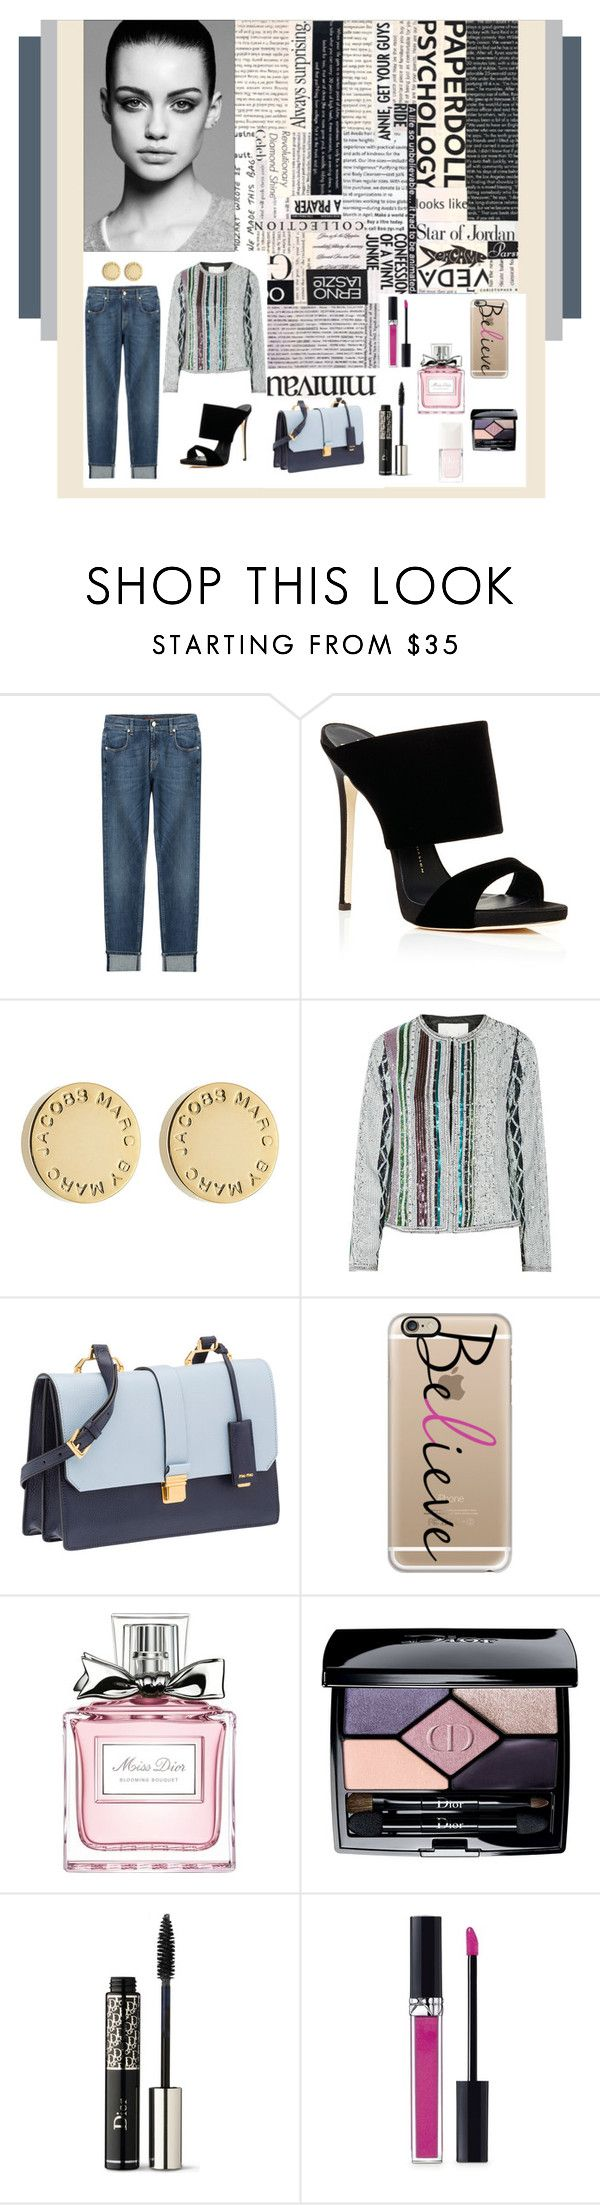 """Untitled #110"" by popescu-io on Polyvore featuring 7 For All Mankind, Trowbridge, Giuseppe Zanotti, Marc by Marc Jacobs, Maje, Miu Miu, Casetify and Christian Dior"